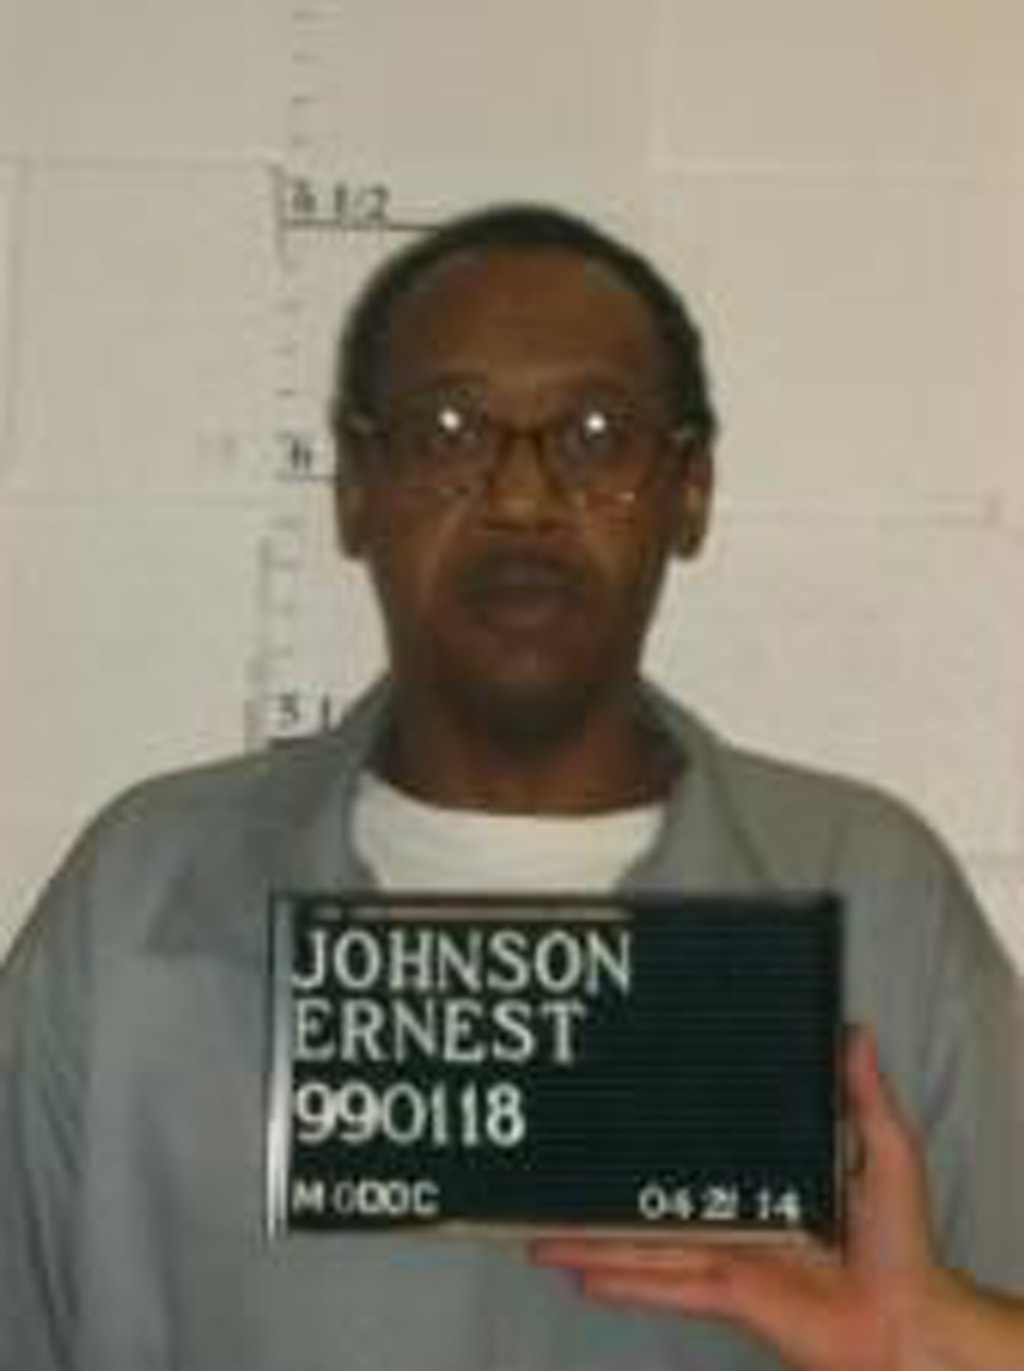 Missouri Scheduled to Execute Man Despite Evidence of Intellectual Disability